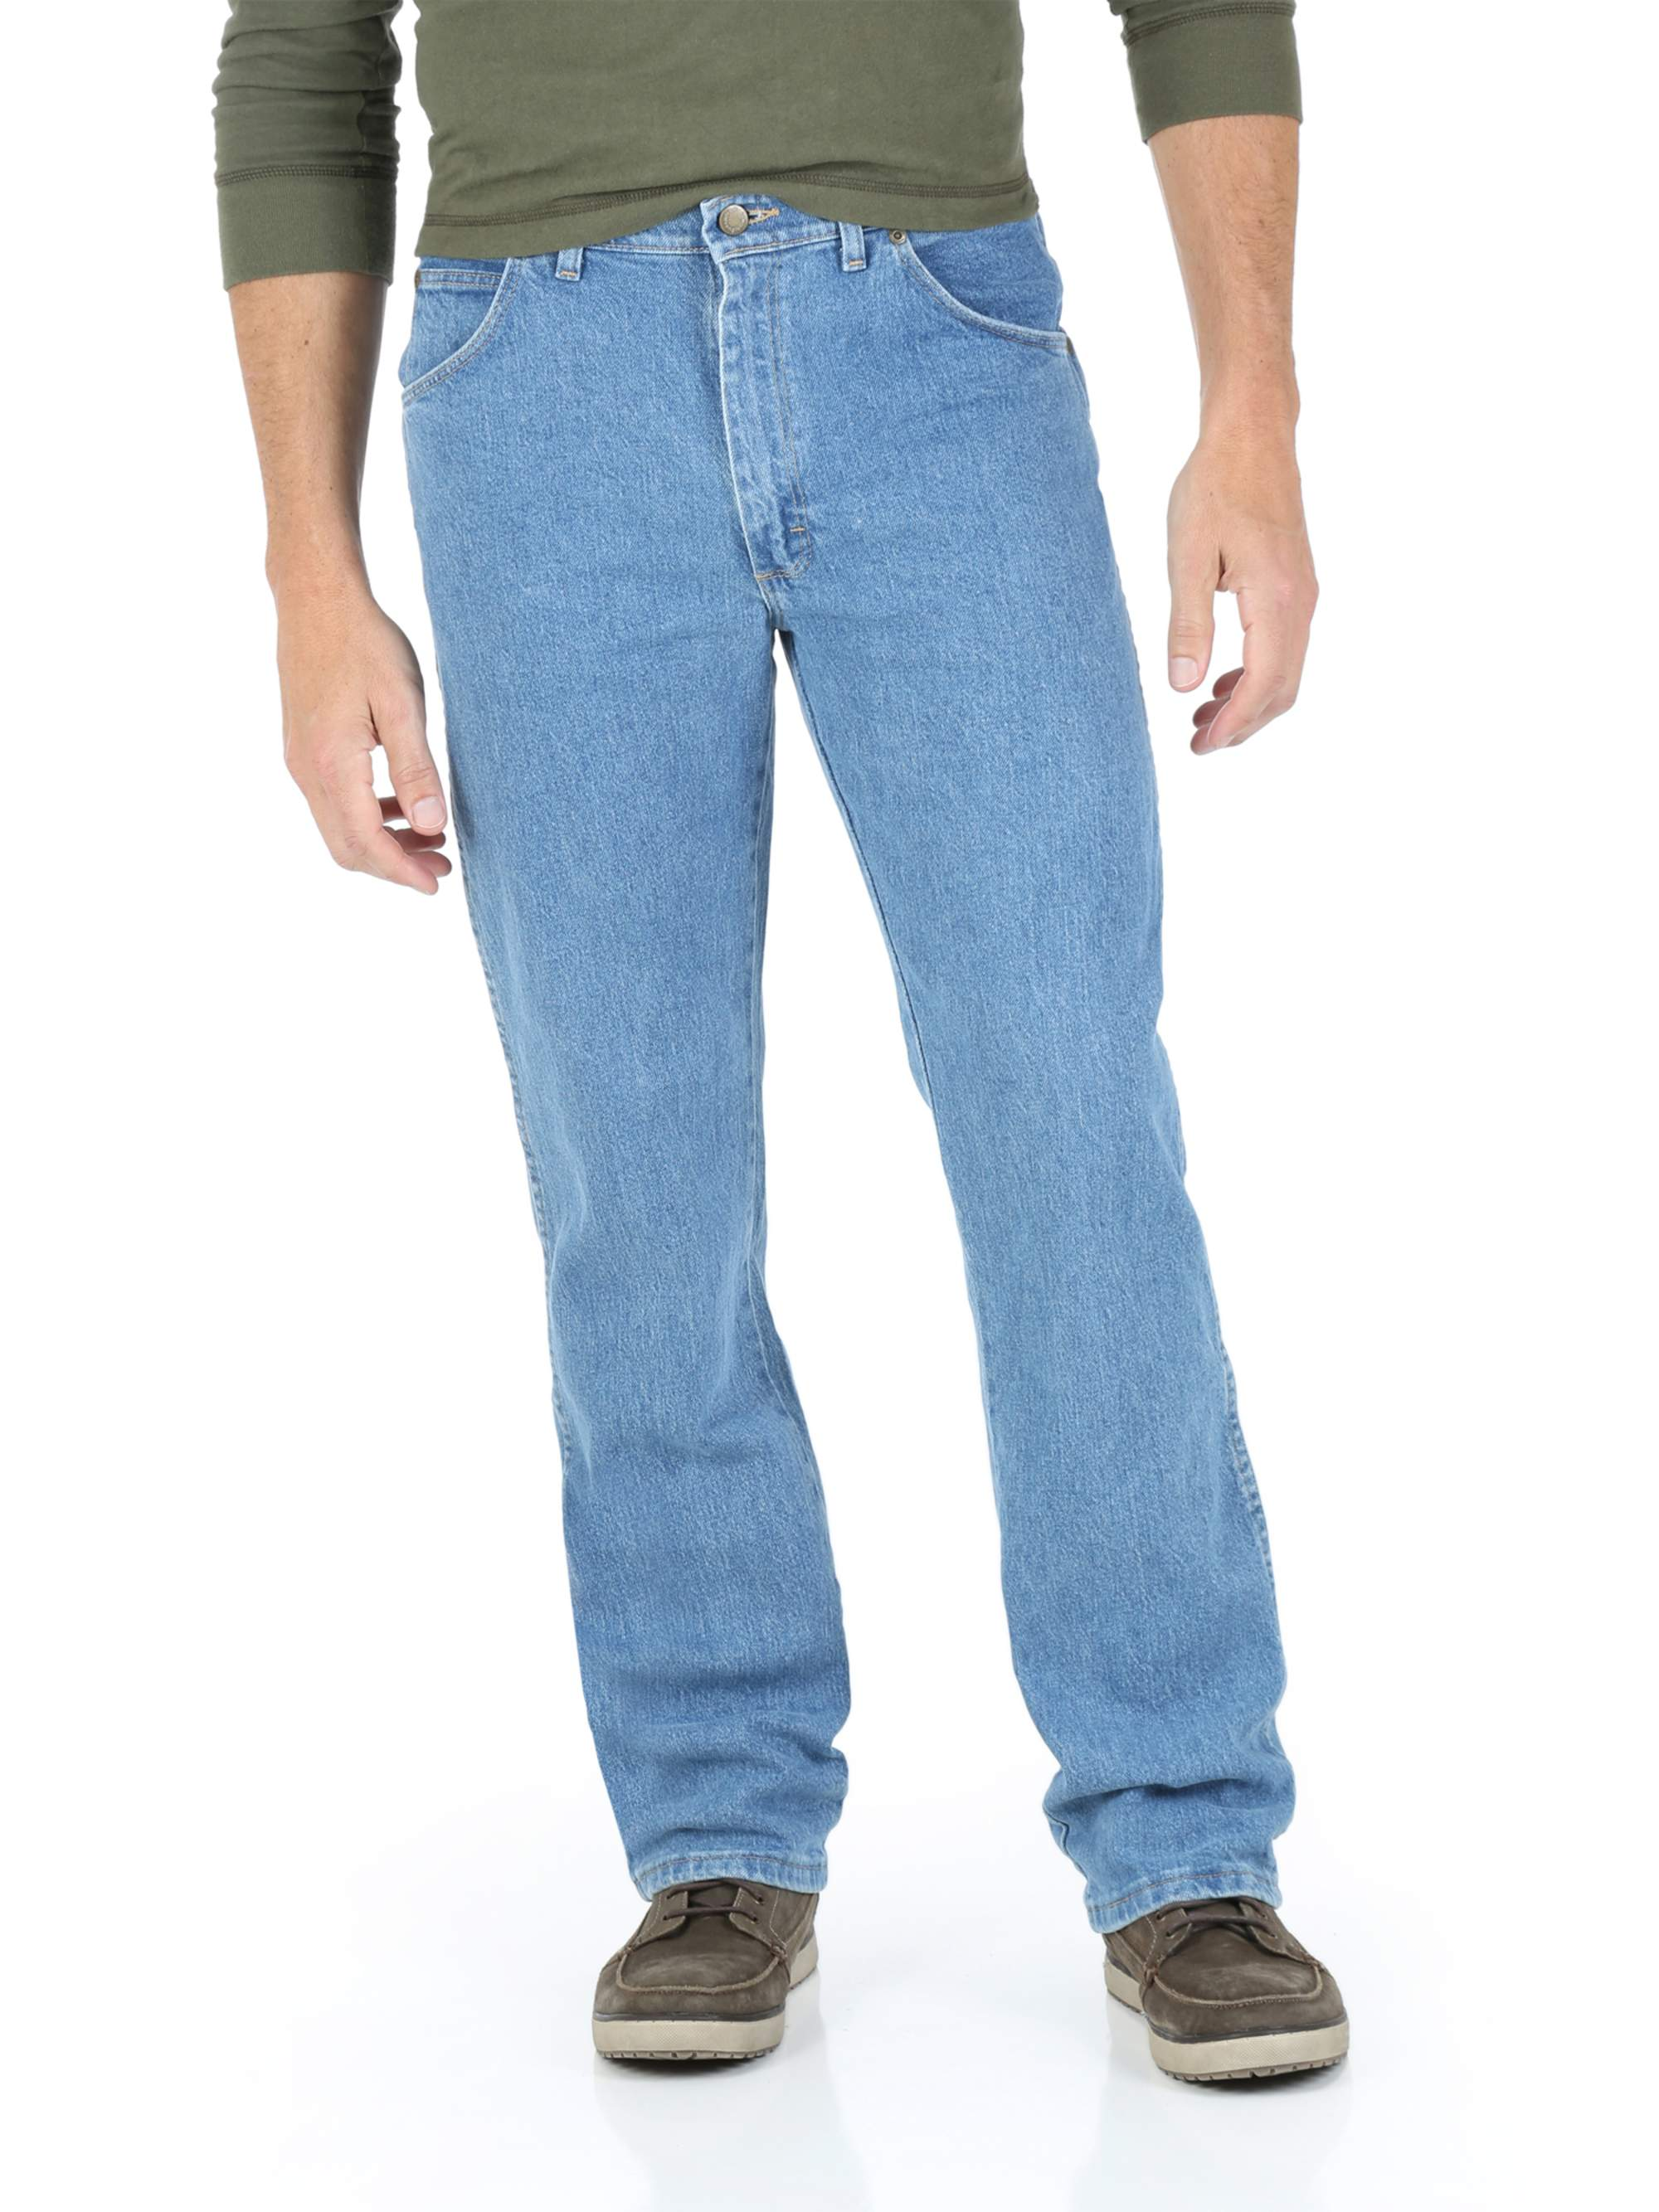 Men\'s Regular Fit Jean with Comfort Flex waistband - Walmart.com